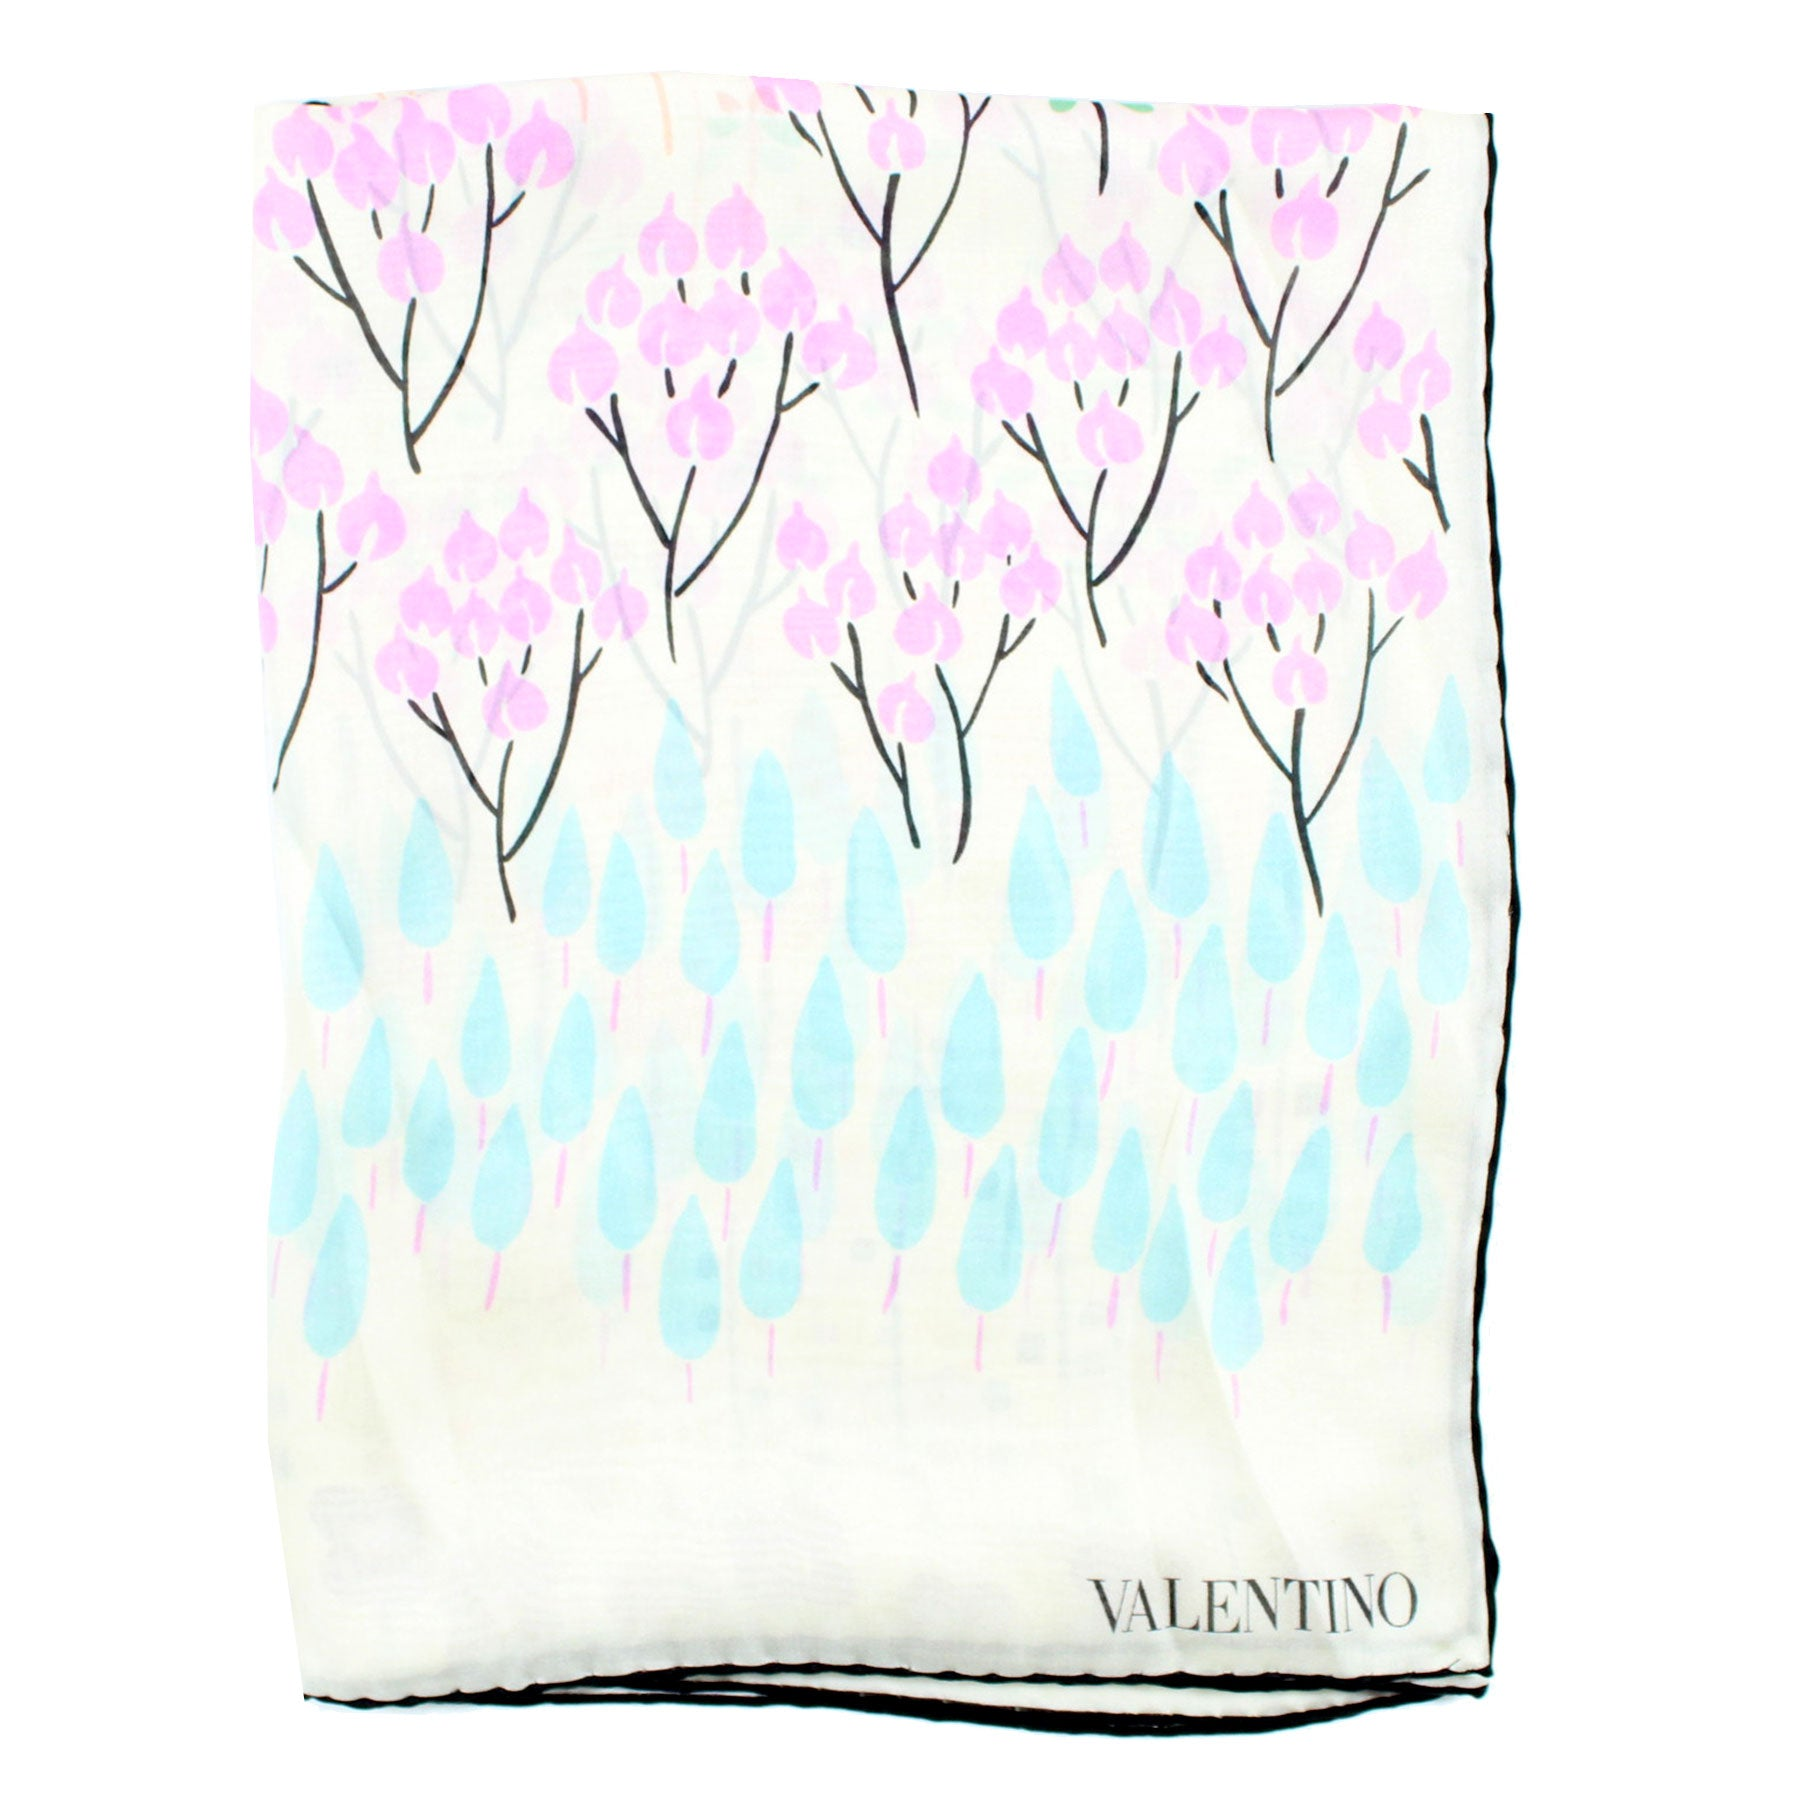 Valentino Scarf White Pink Sky Blue Geometric Floral New